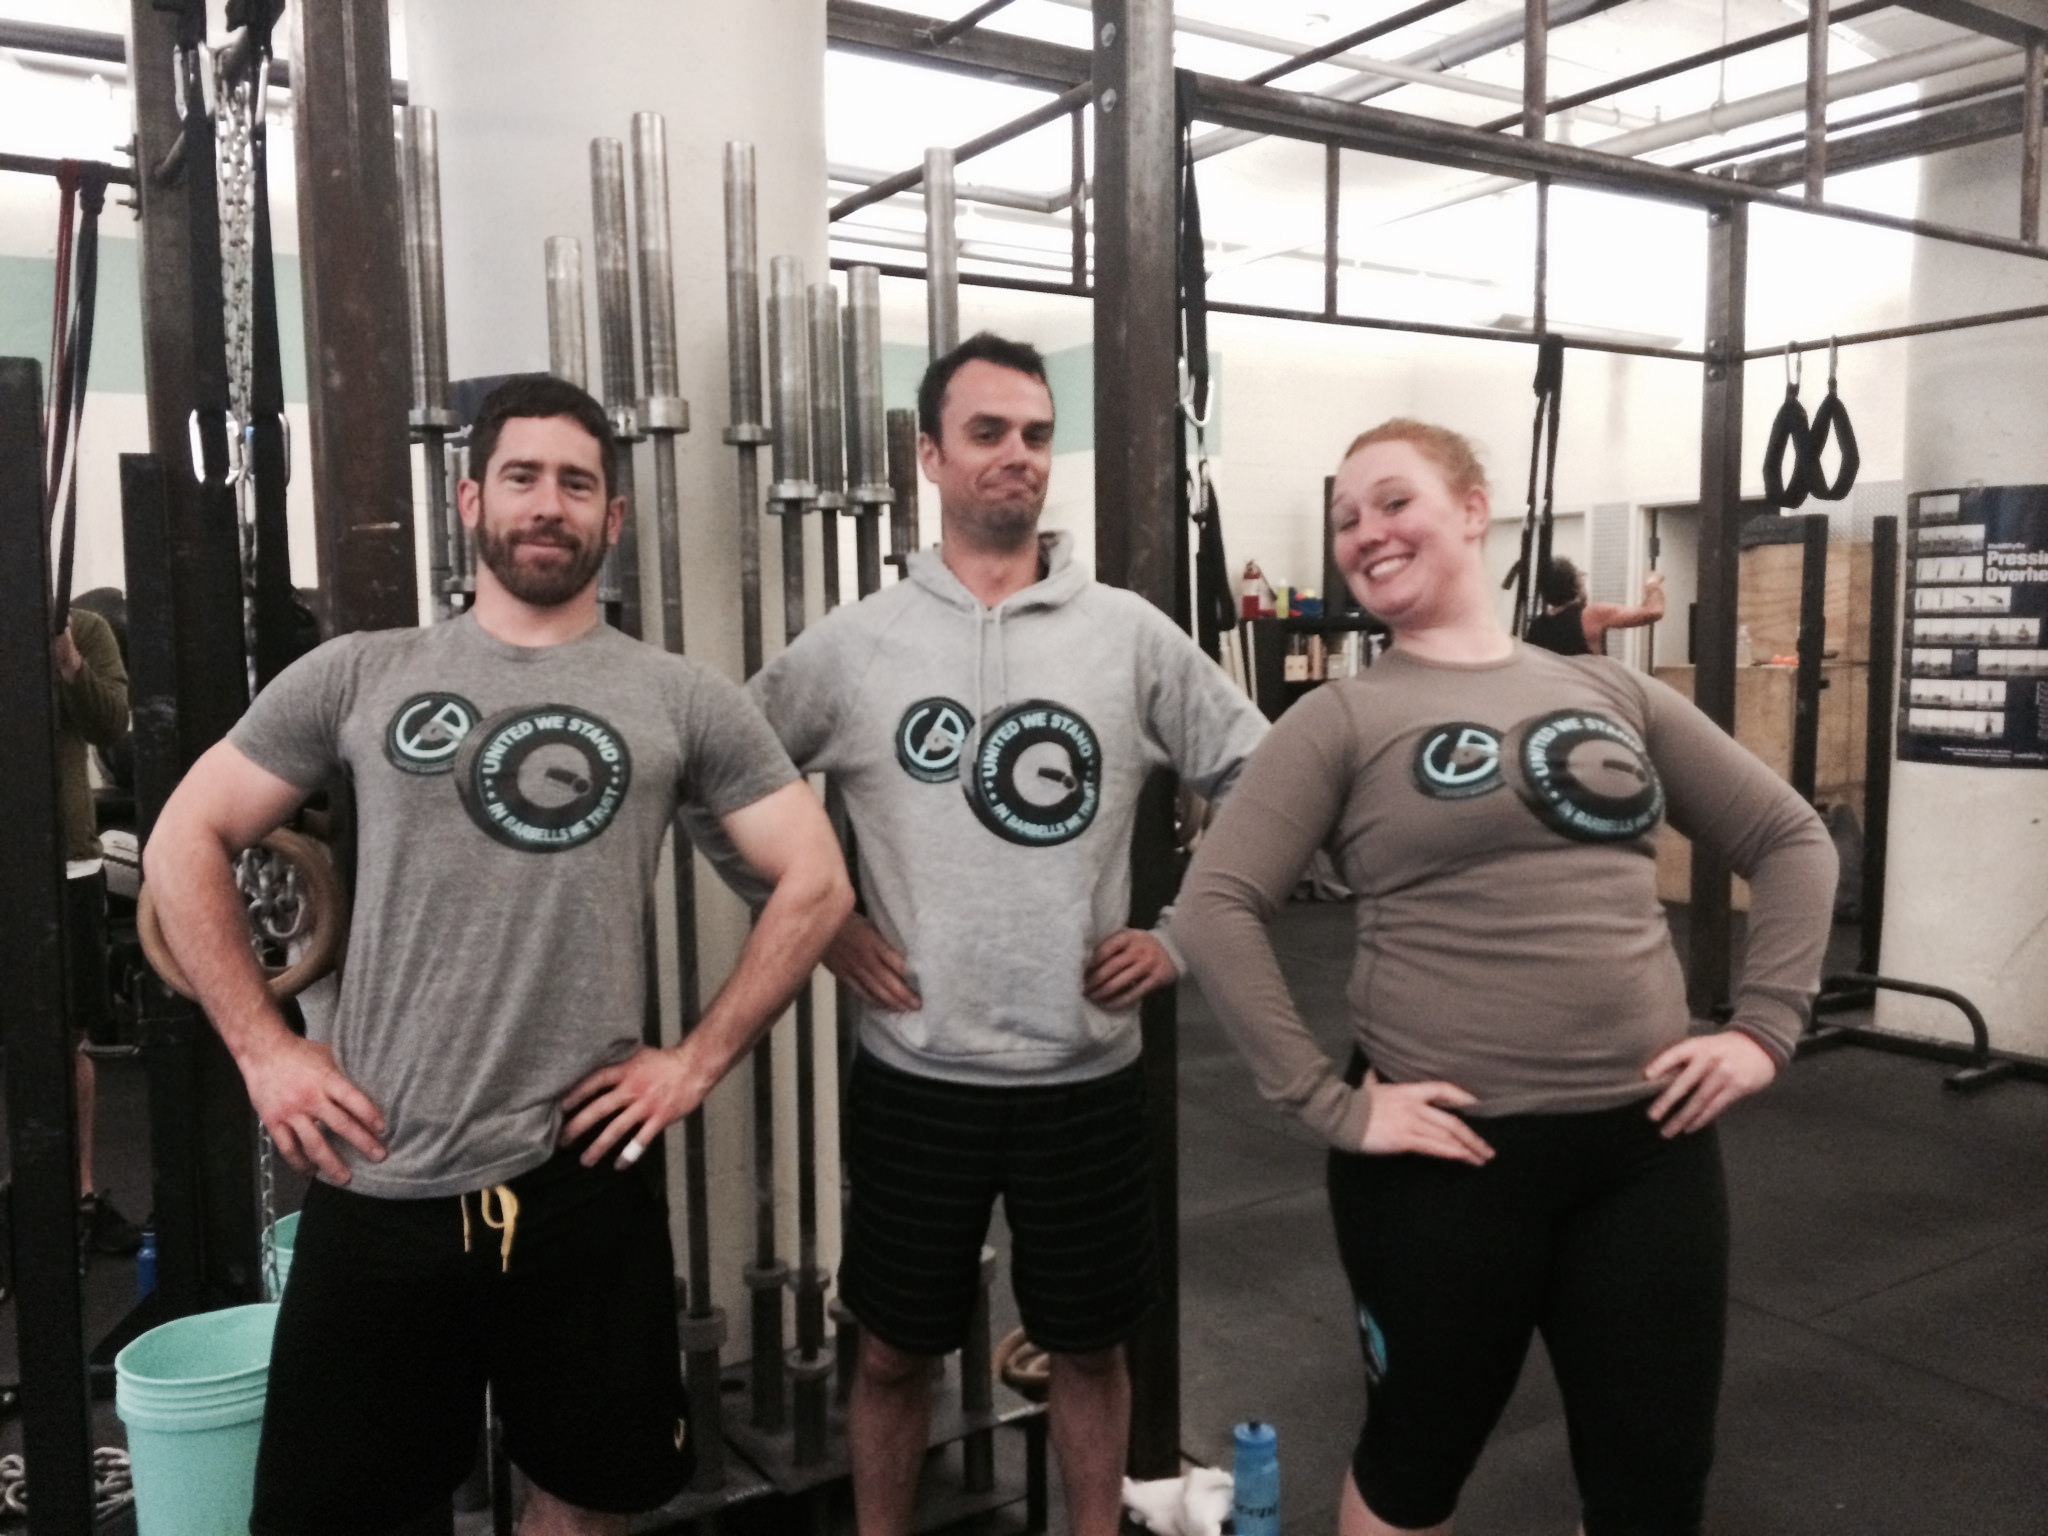 Andrew, Tristan, and Megan showing off their ub tees